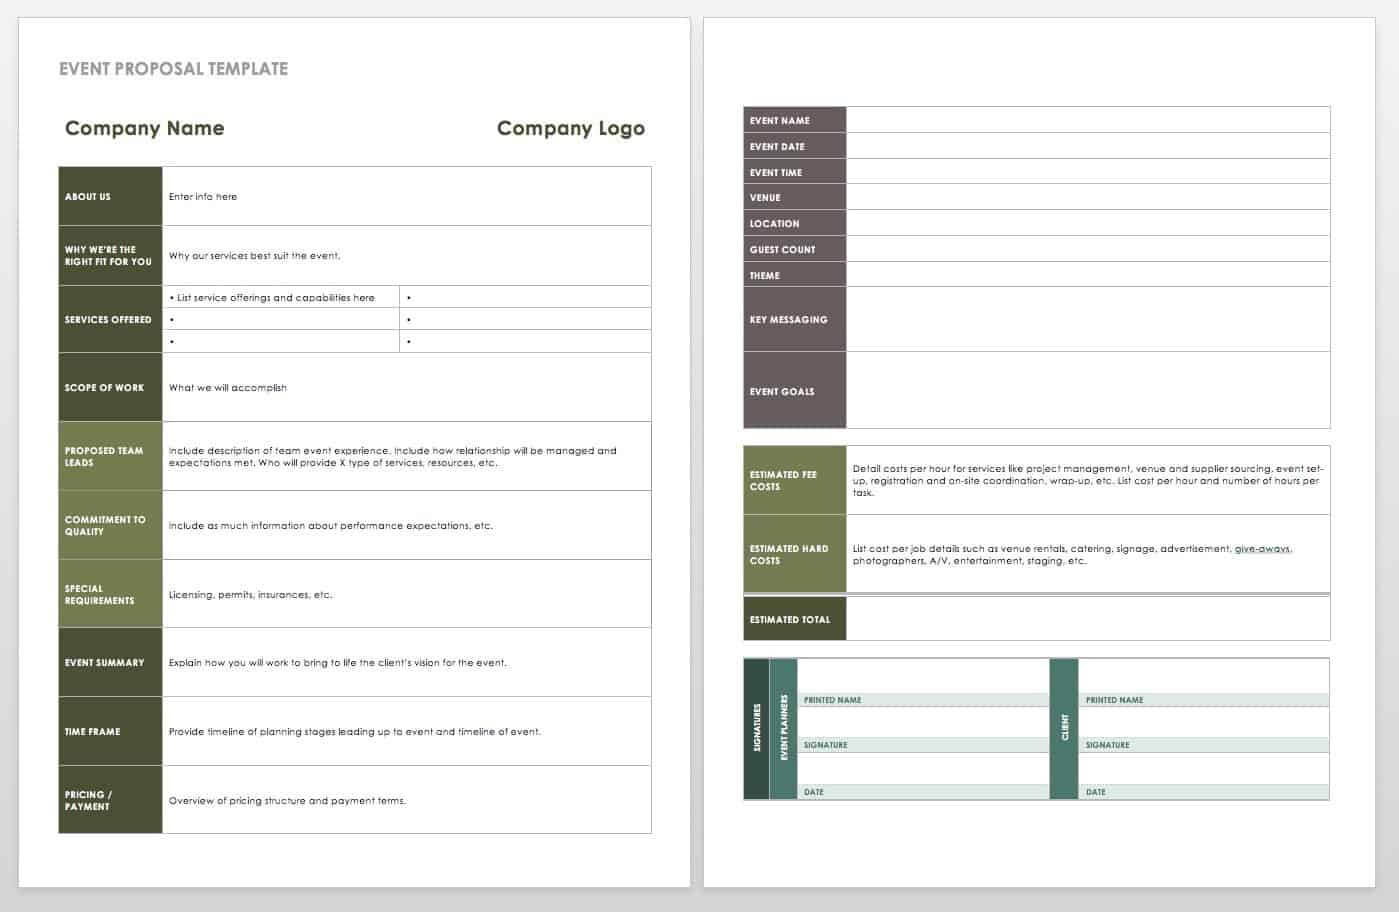 21 Free Event Planning Templates | Smartsheet With Regard To Post Event Evaluation Report Template